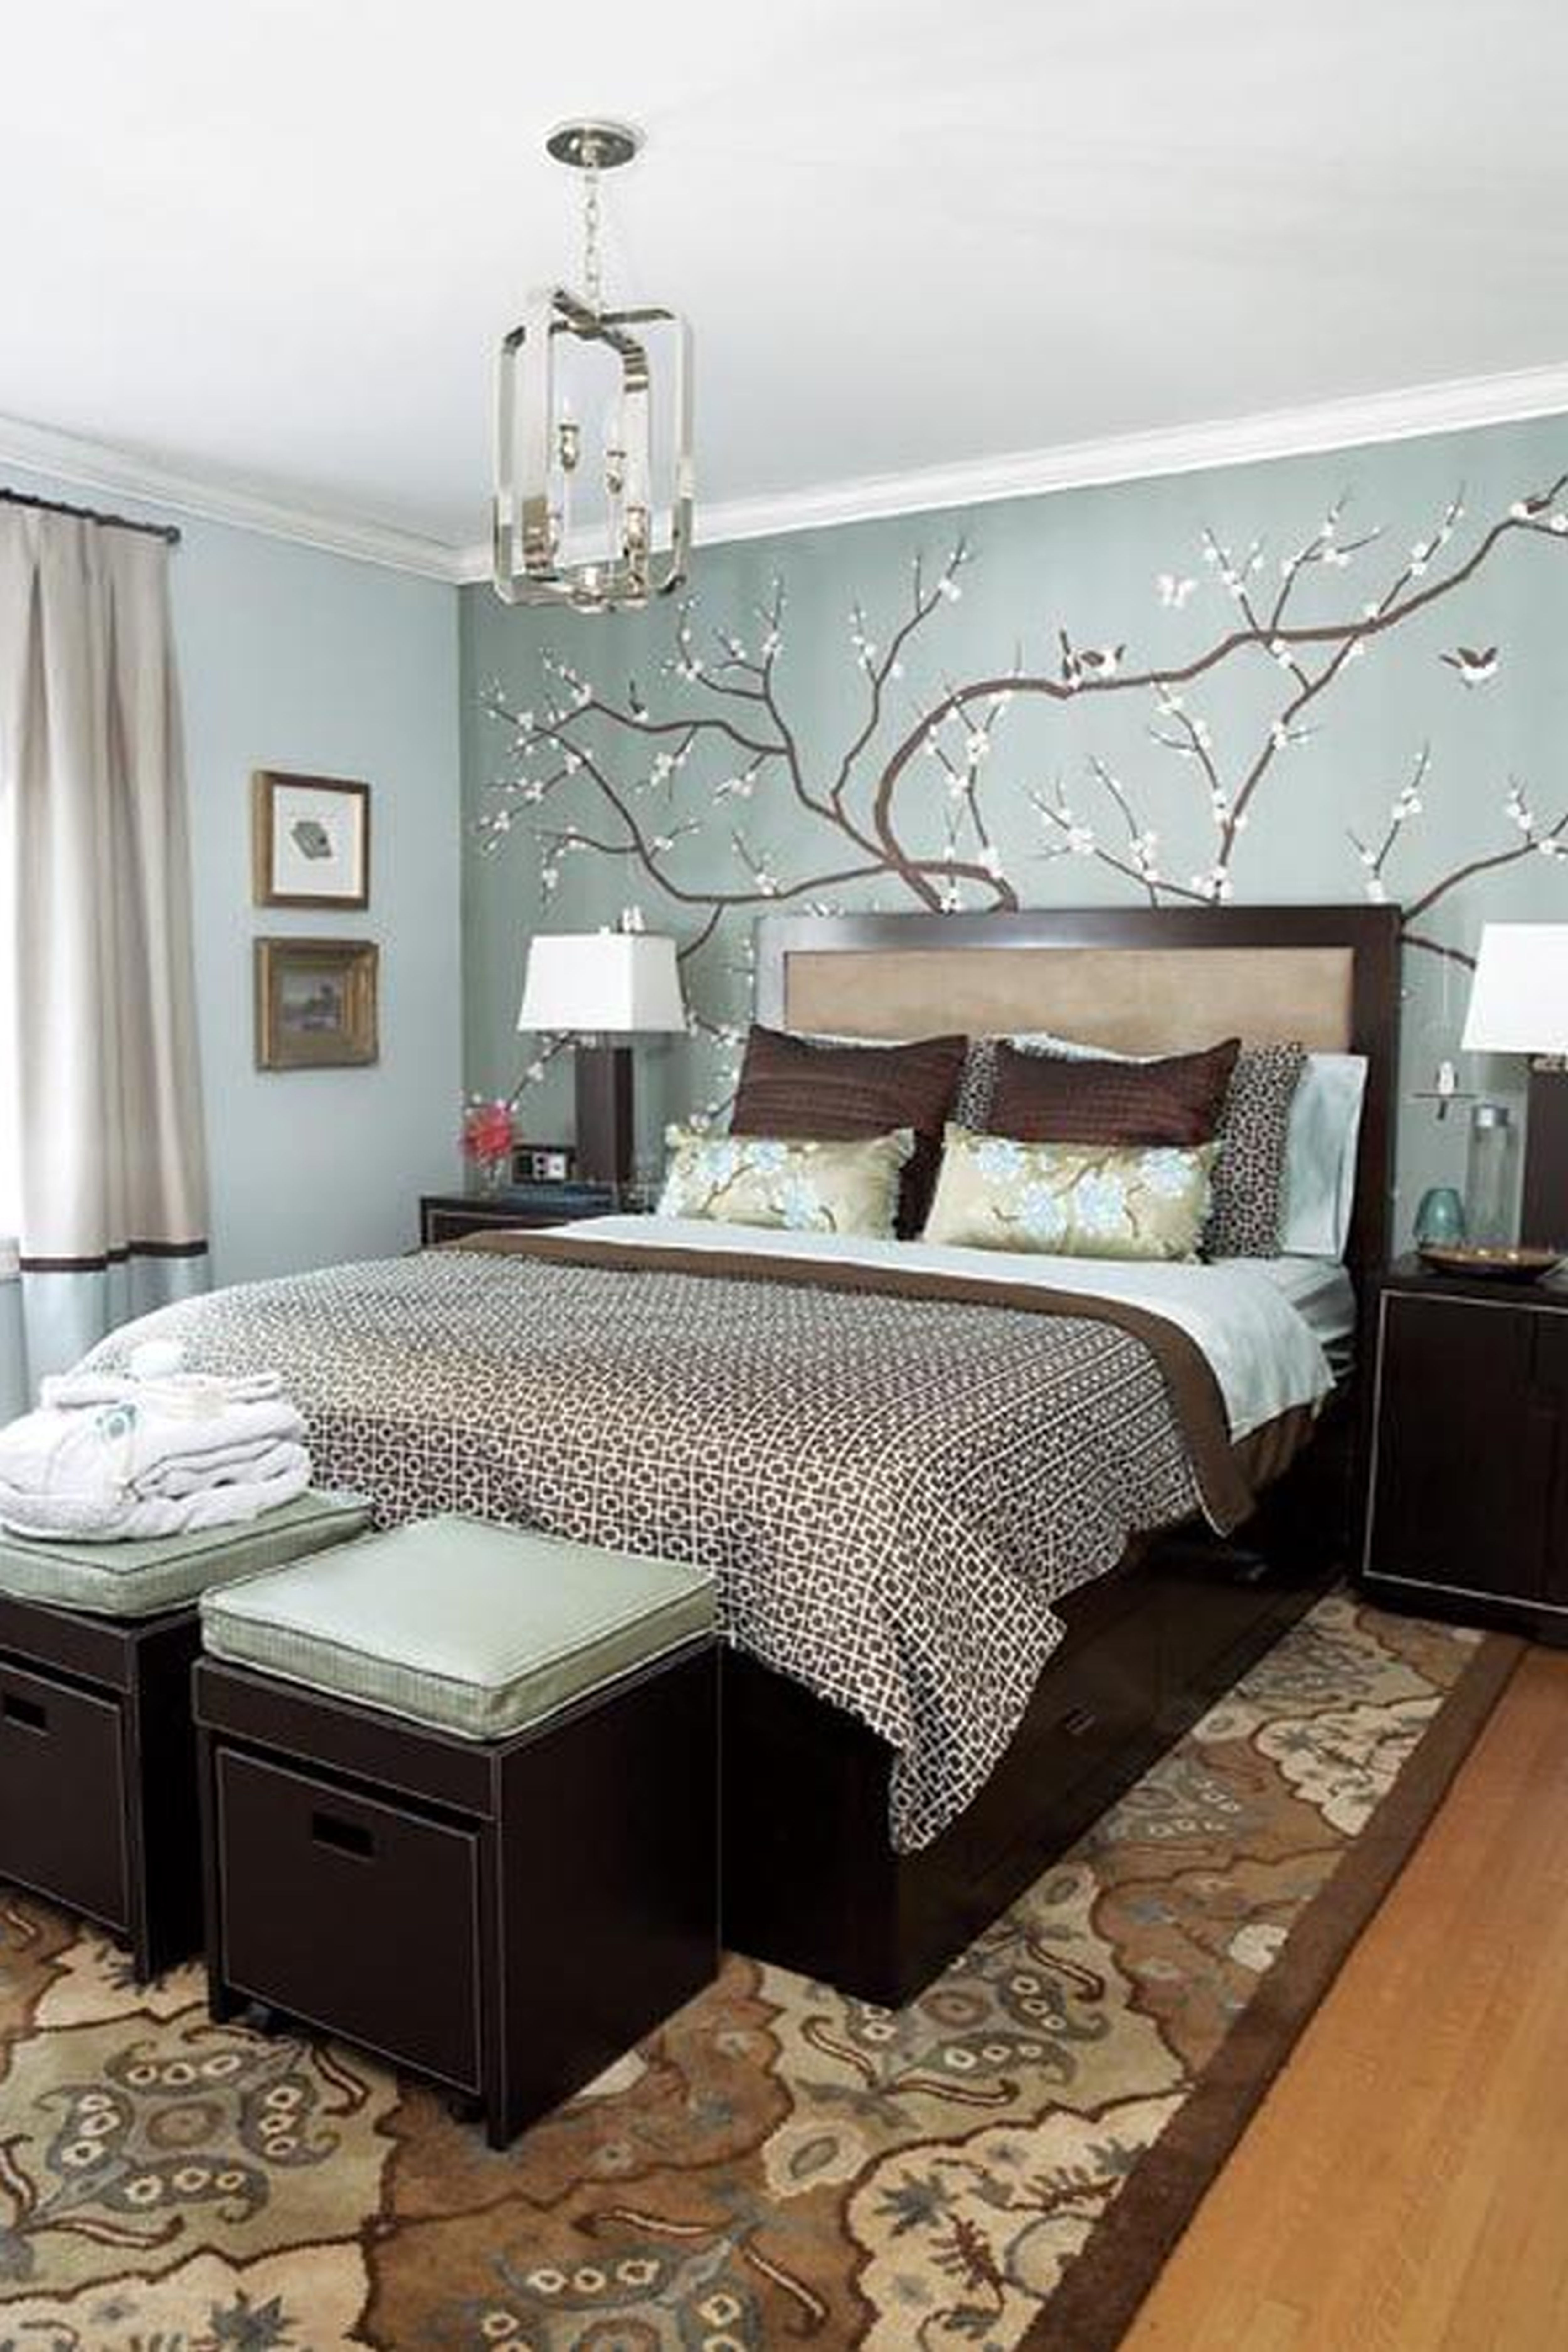 Blue bedroom design ideas - Bedroom Decorating Ideas With Grey Walls